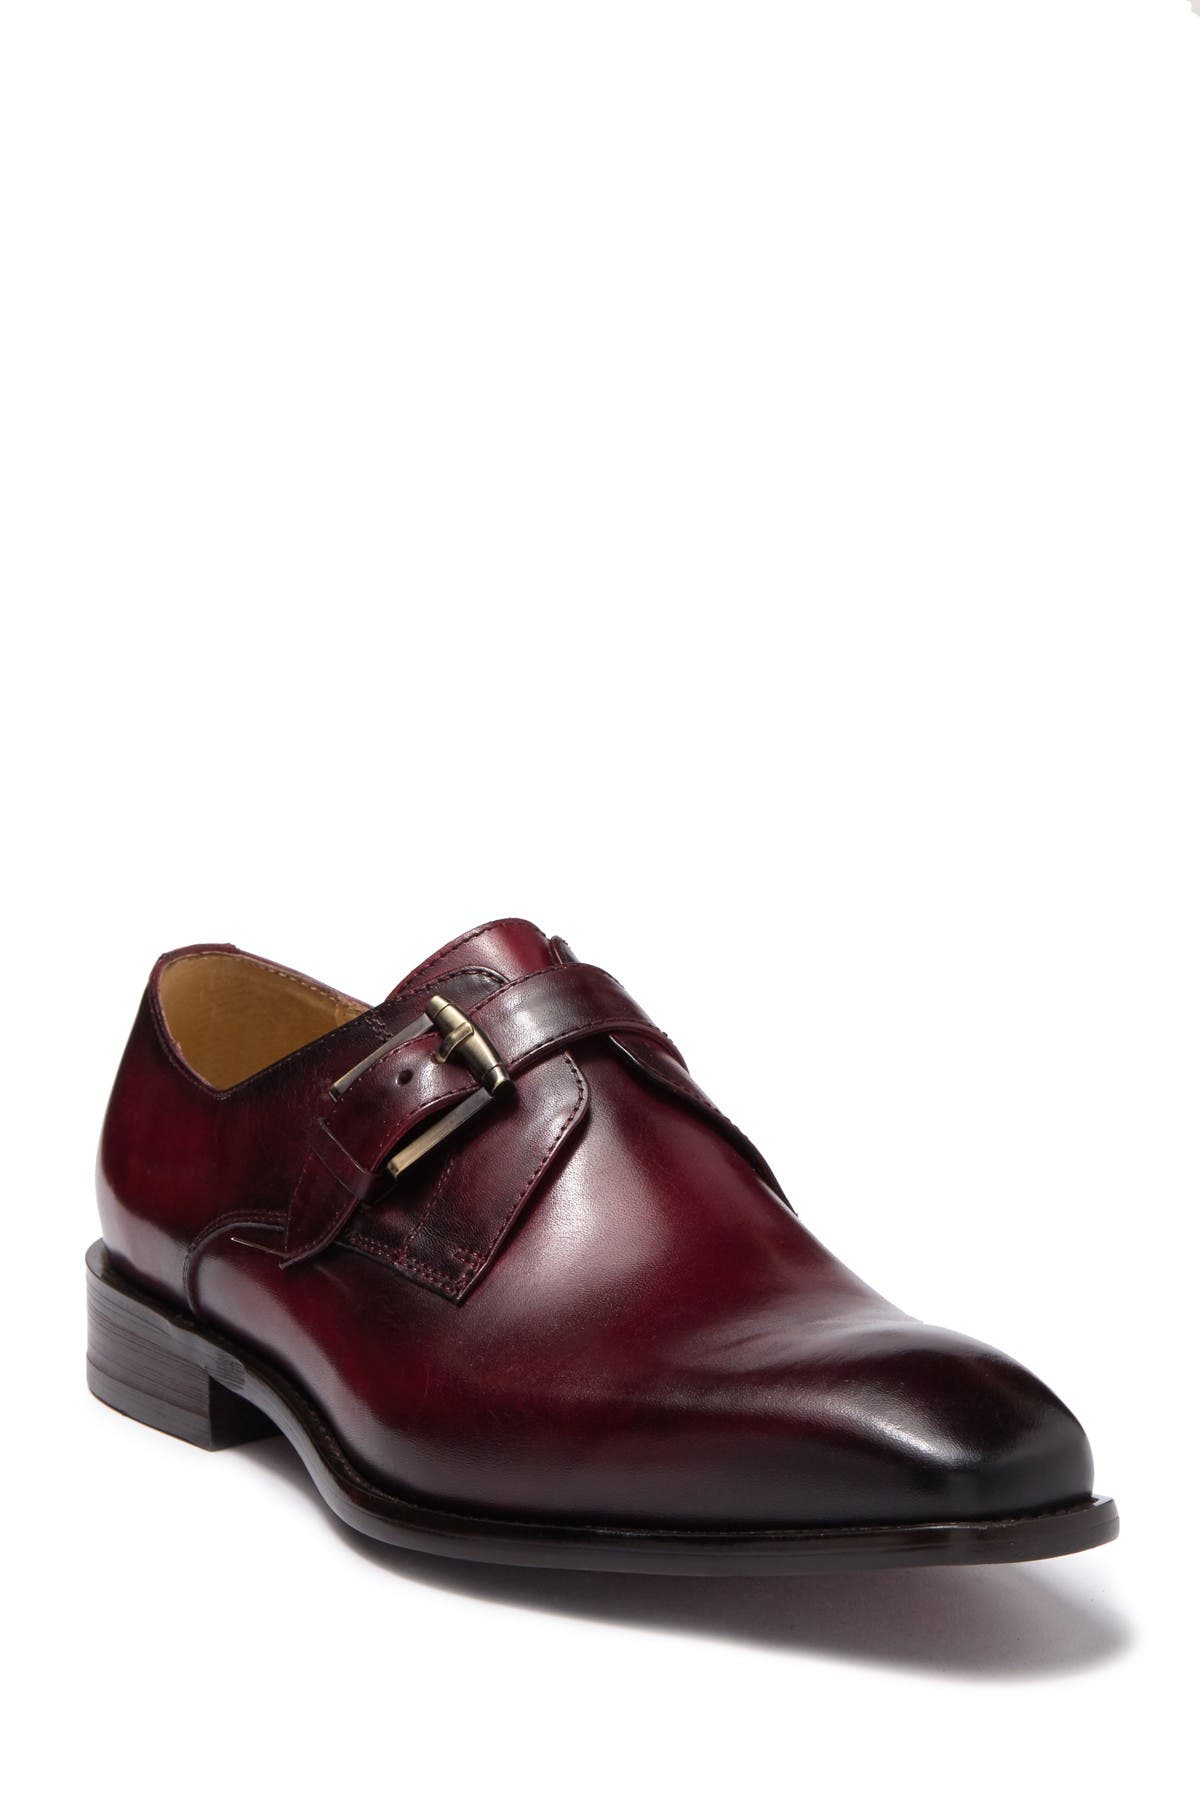 Image of MAISON FORTE Davos Buckle Strap Leather Loafer